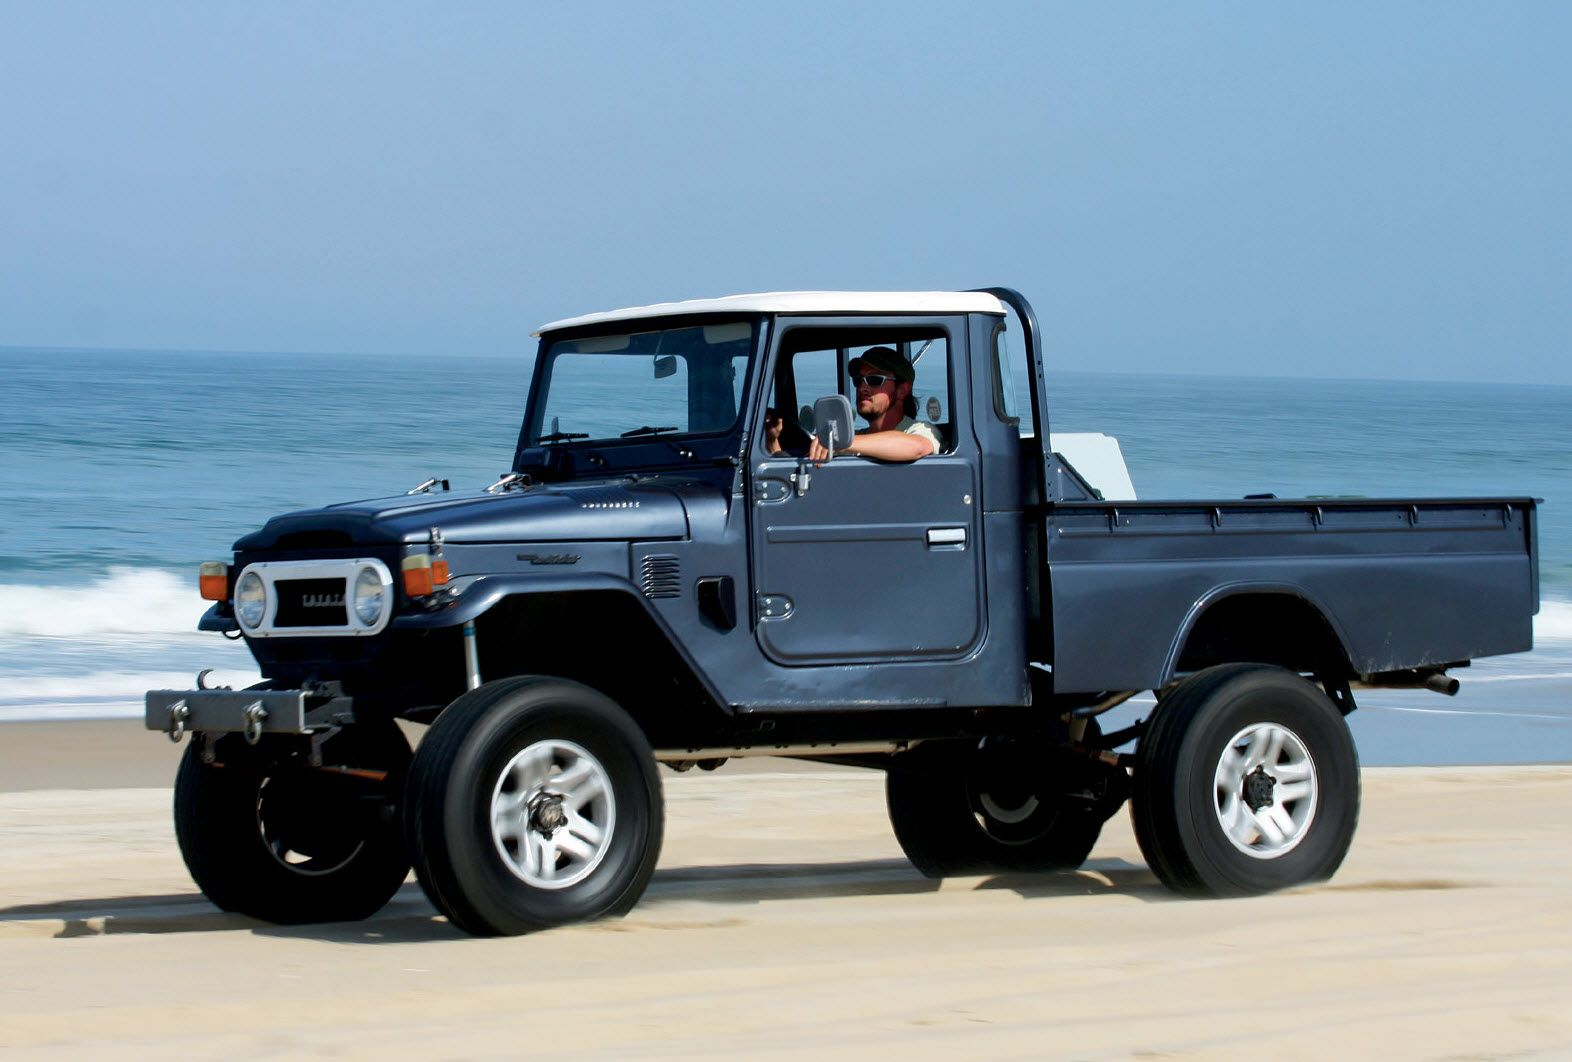 fj45 beach fj45 pinterest beach toyota and land cruiser. Black Bedroom Furniture Sets. Home Design Ideas